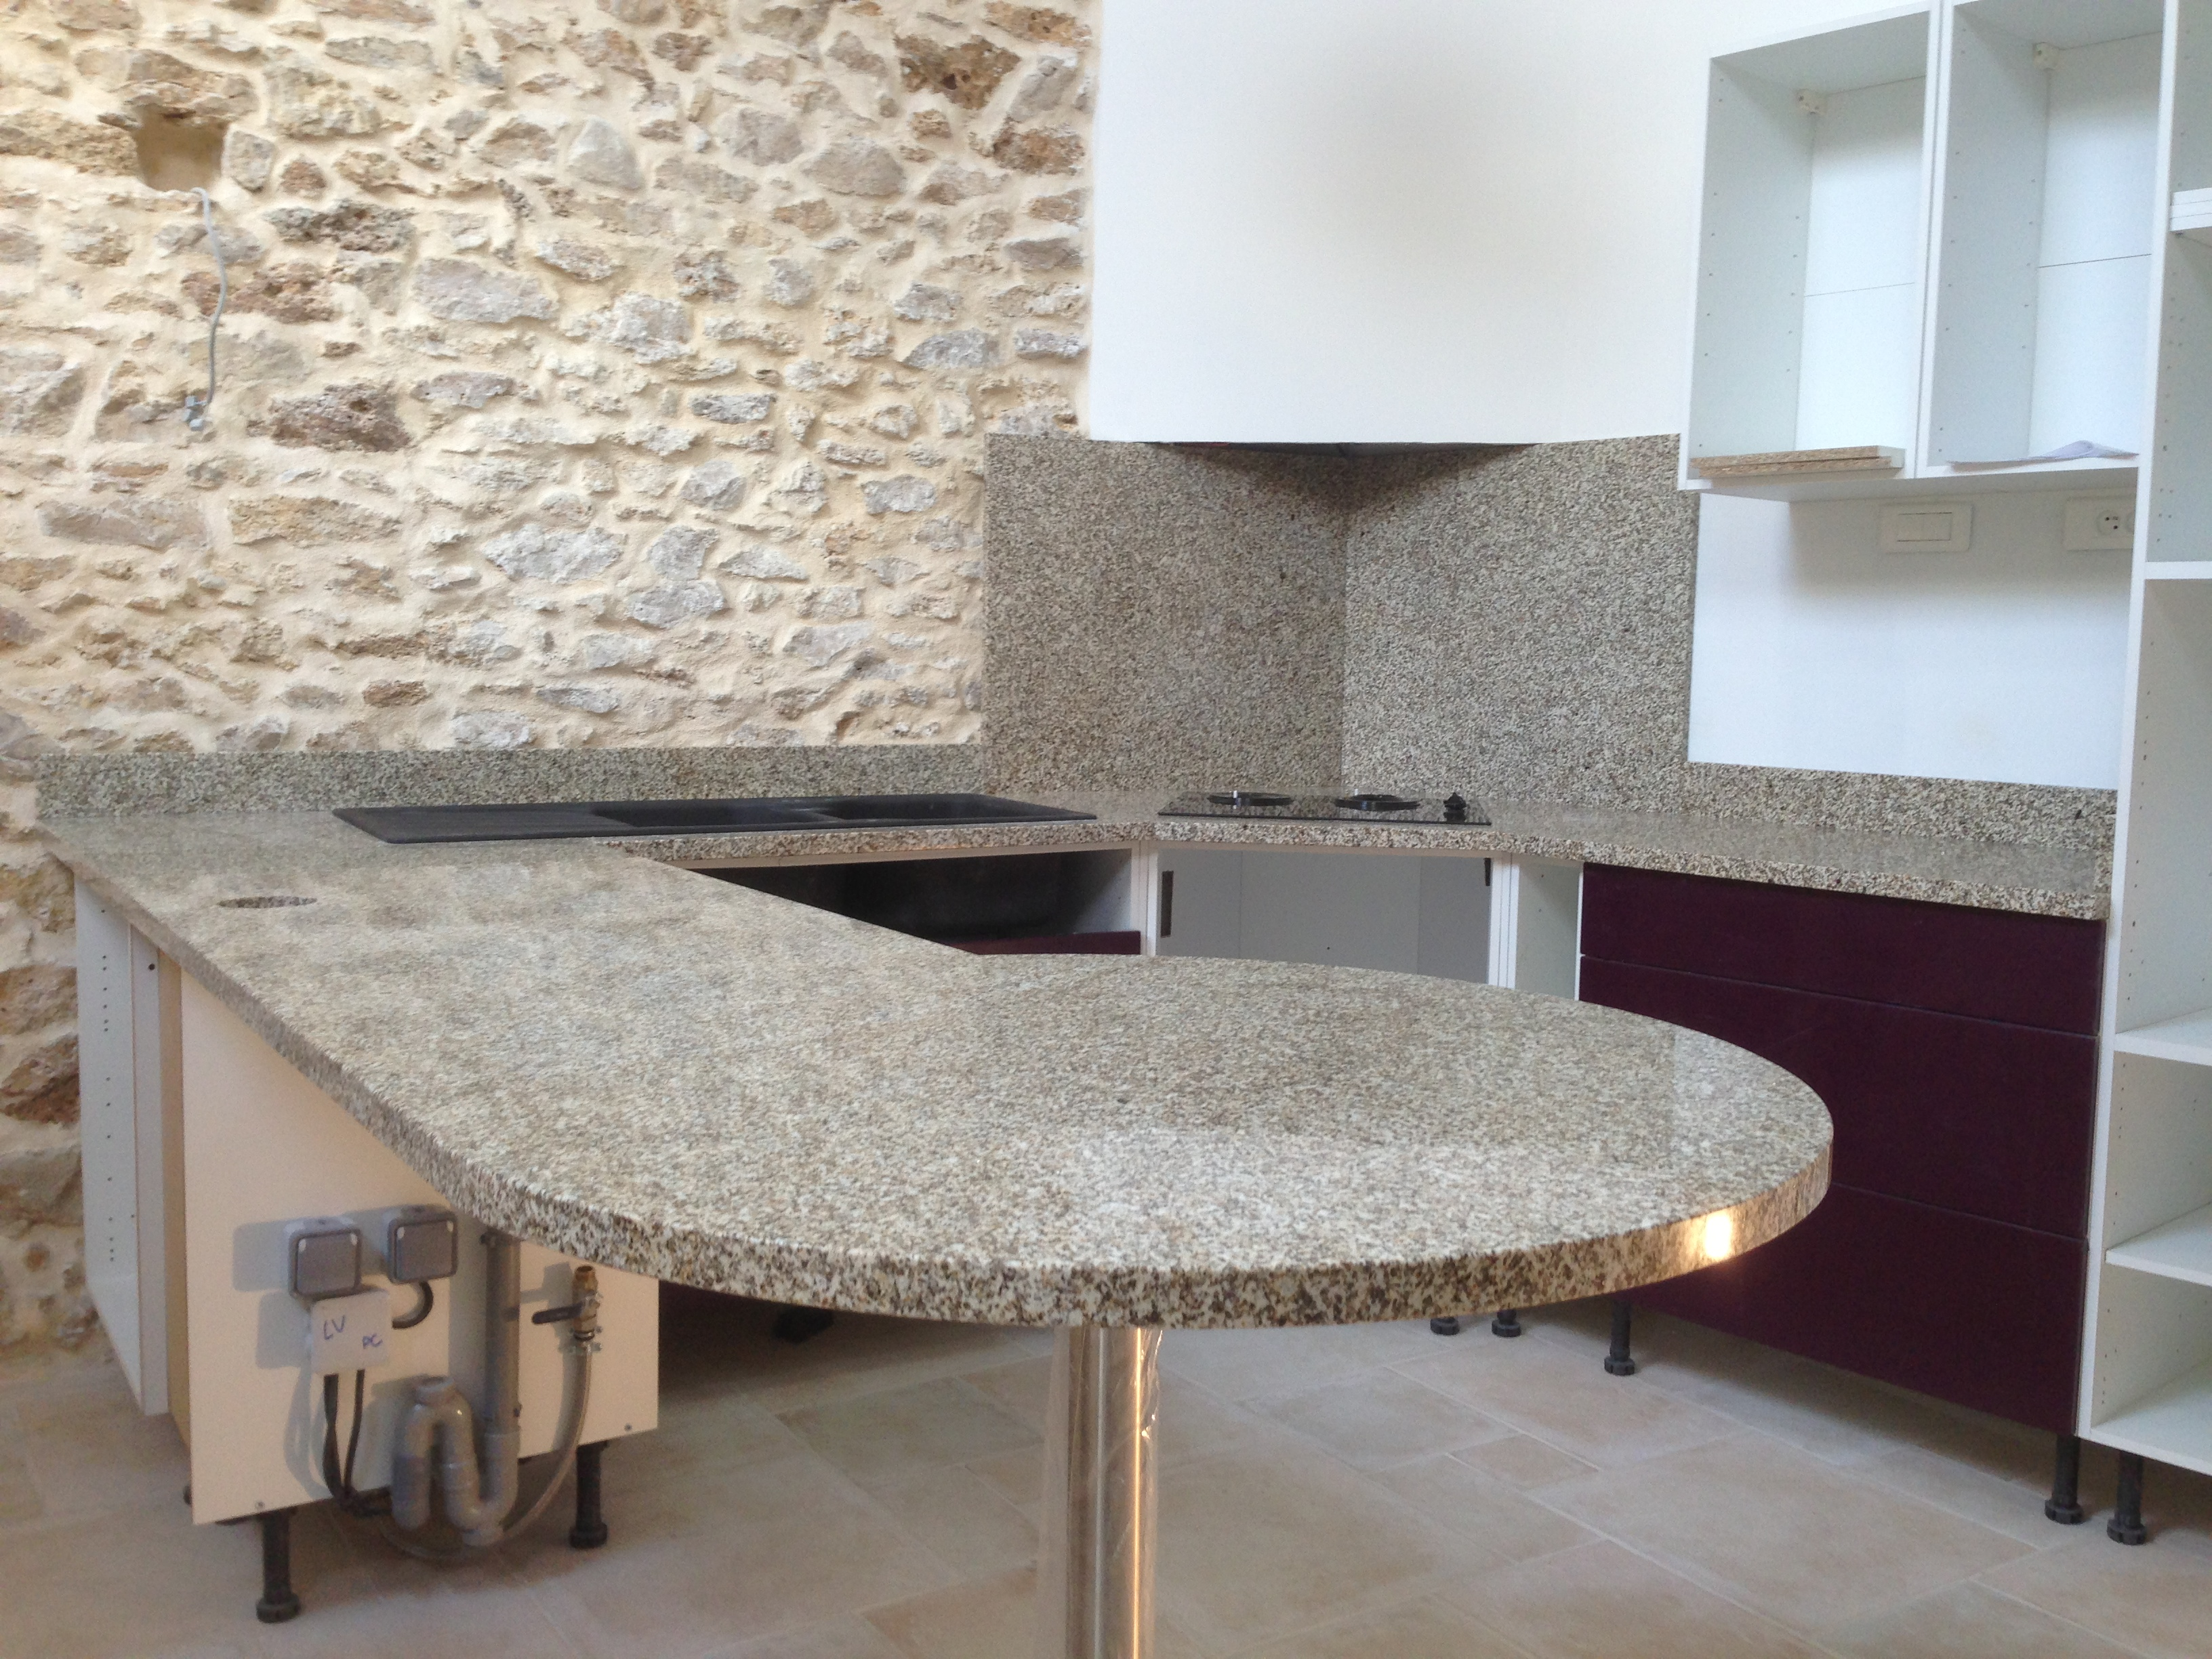 Devis plan de travail com paris granit quartz marbre for Table de cuisine kreabel